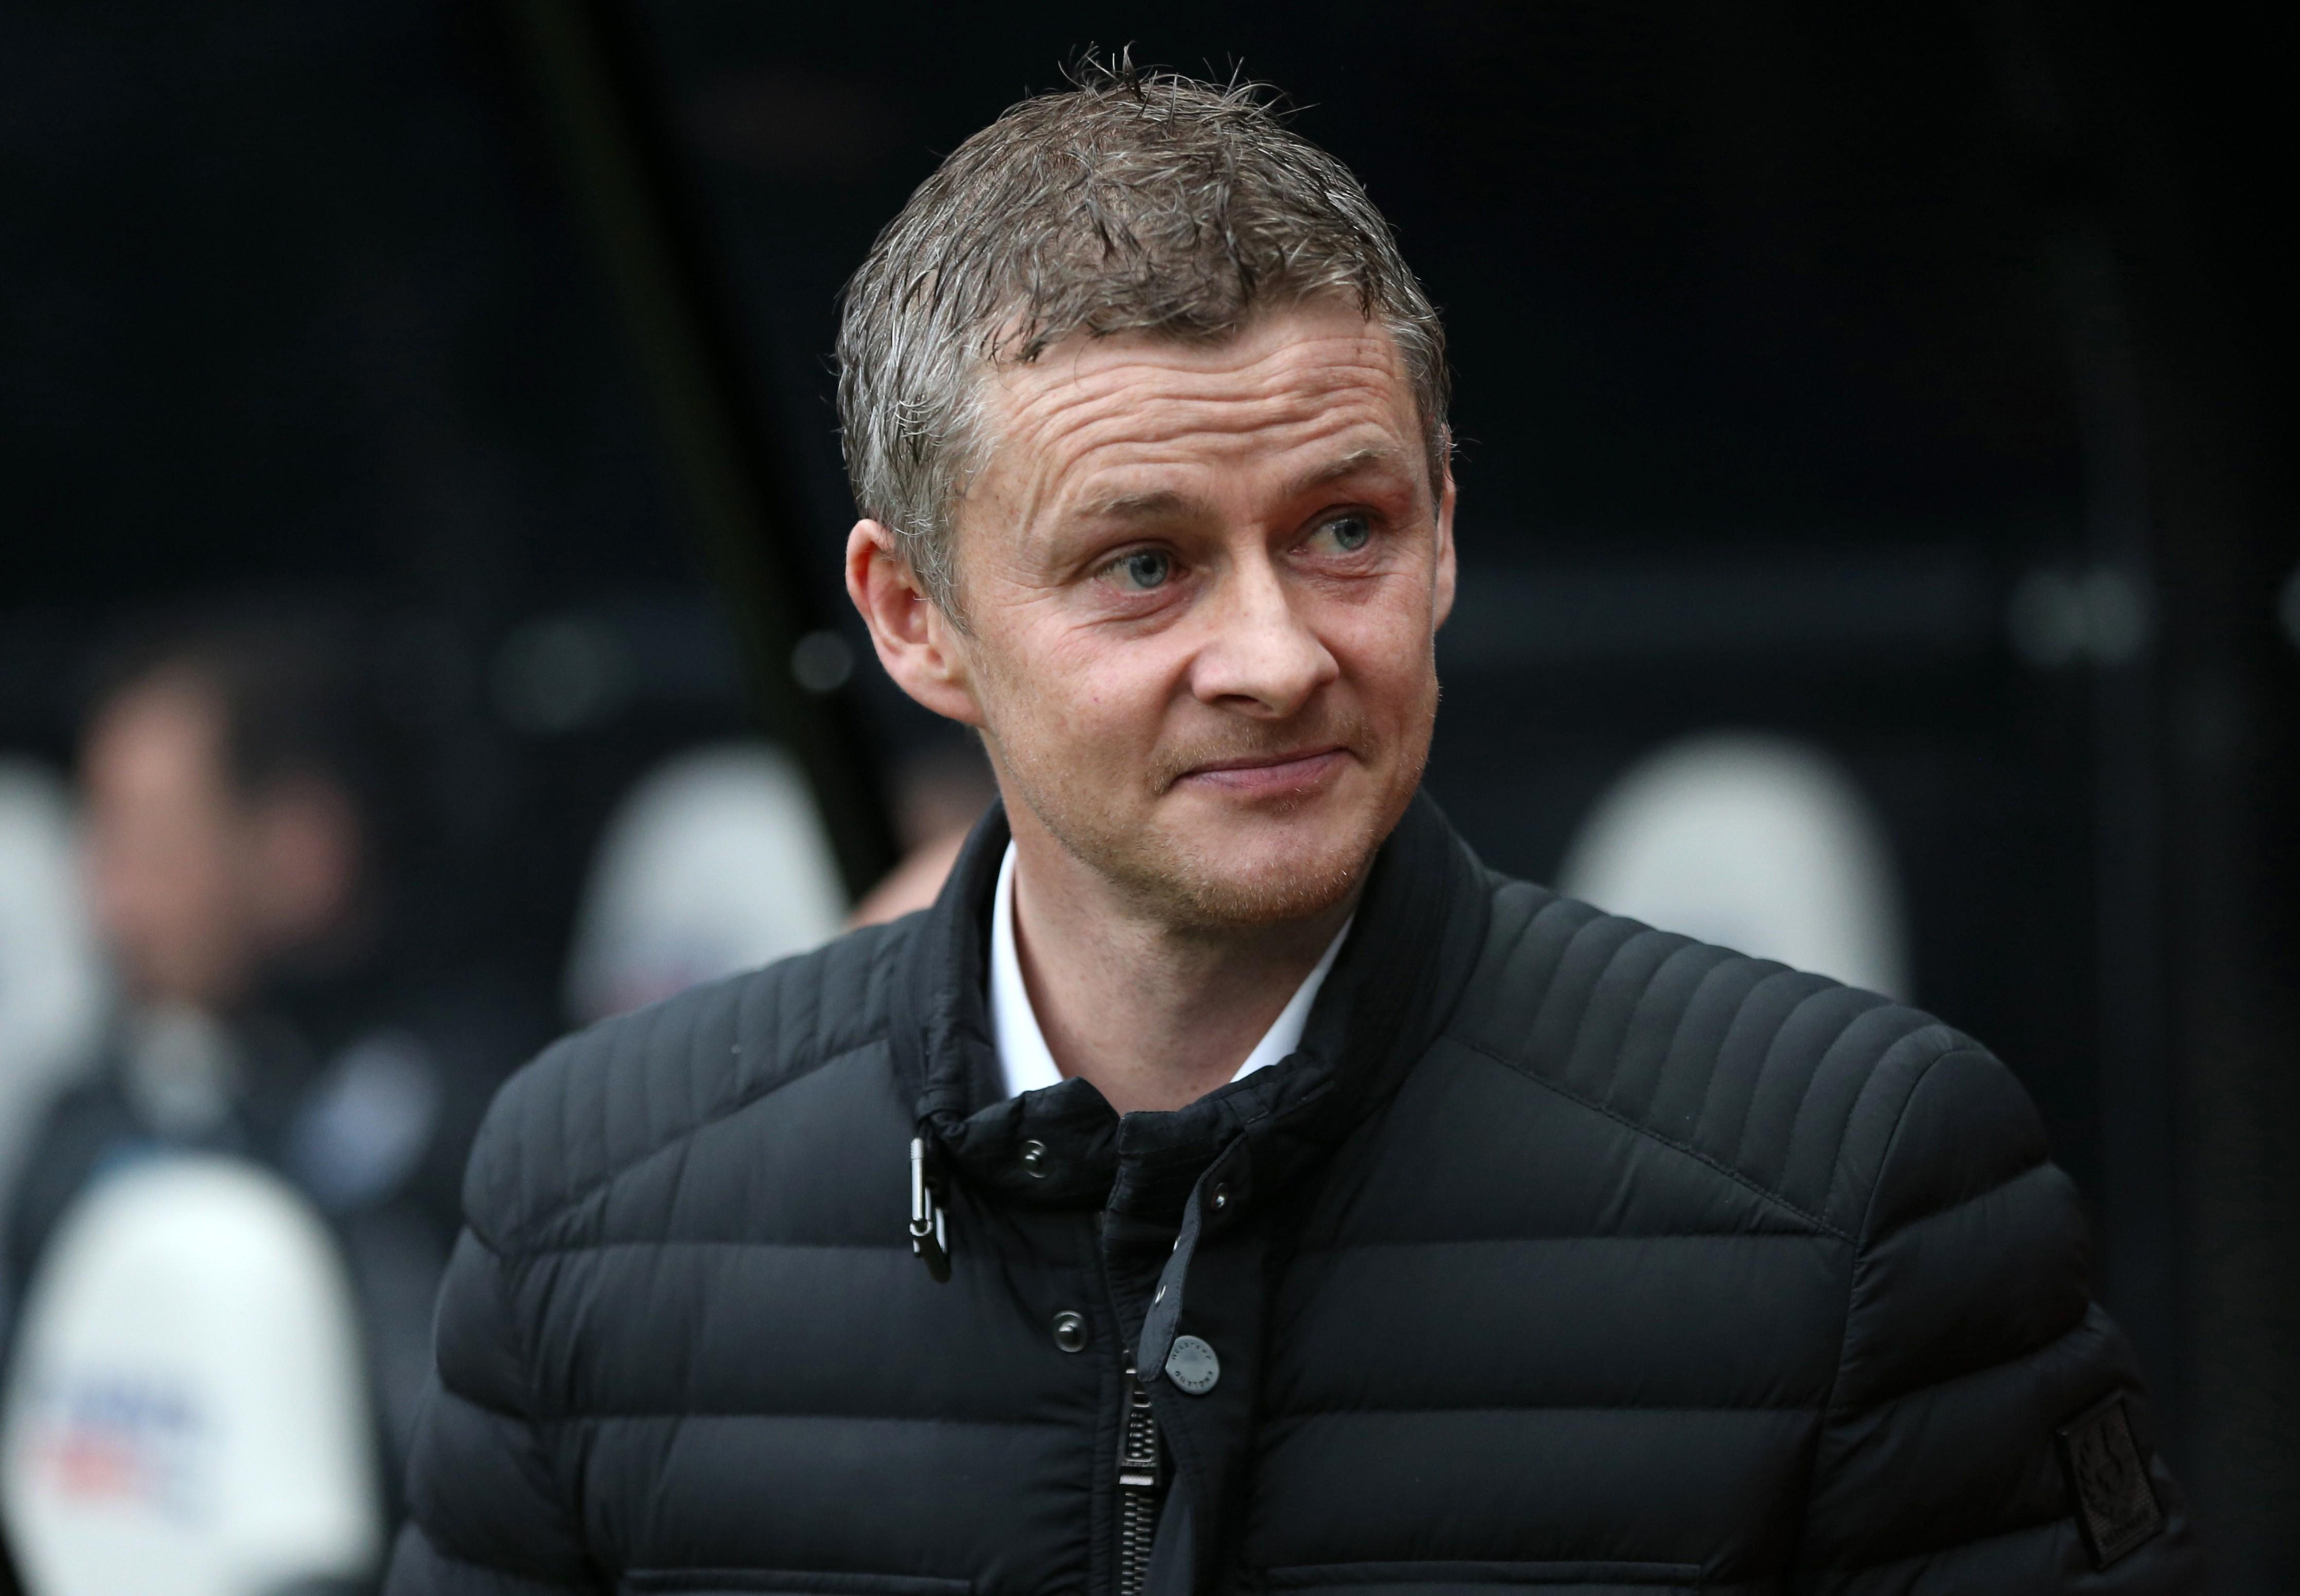 Ole Gunnar Solskjaer has been appointed interim Manchester United manager